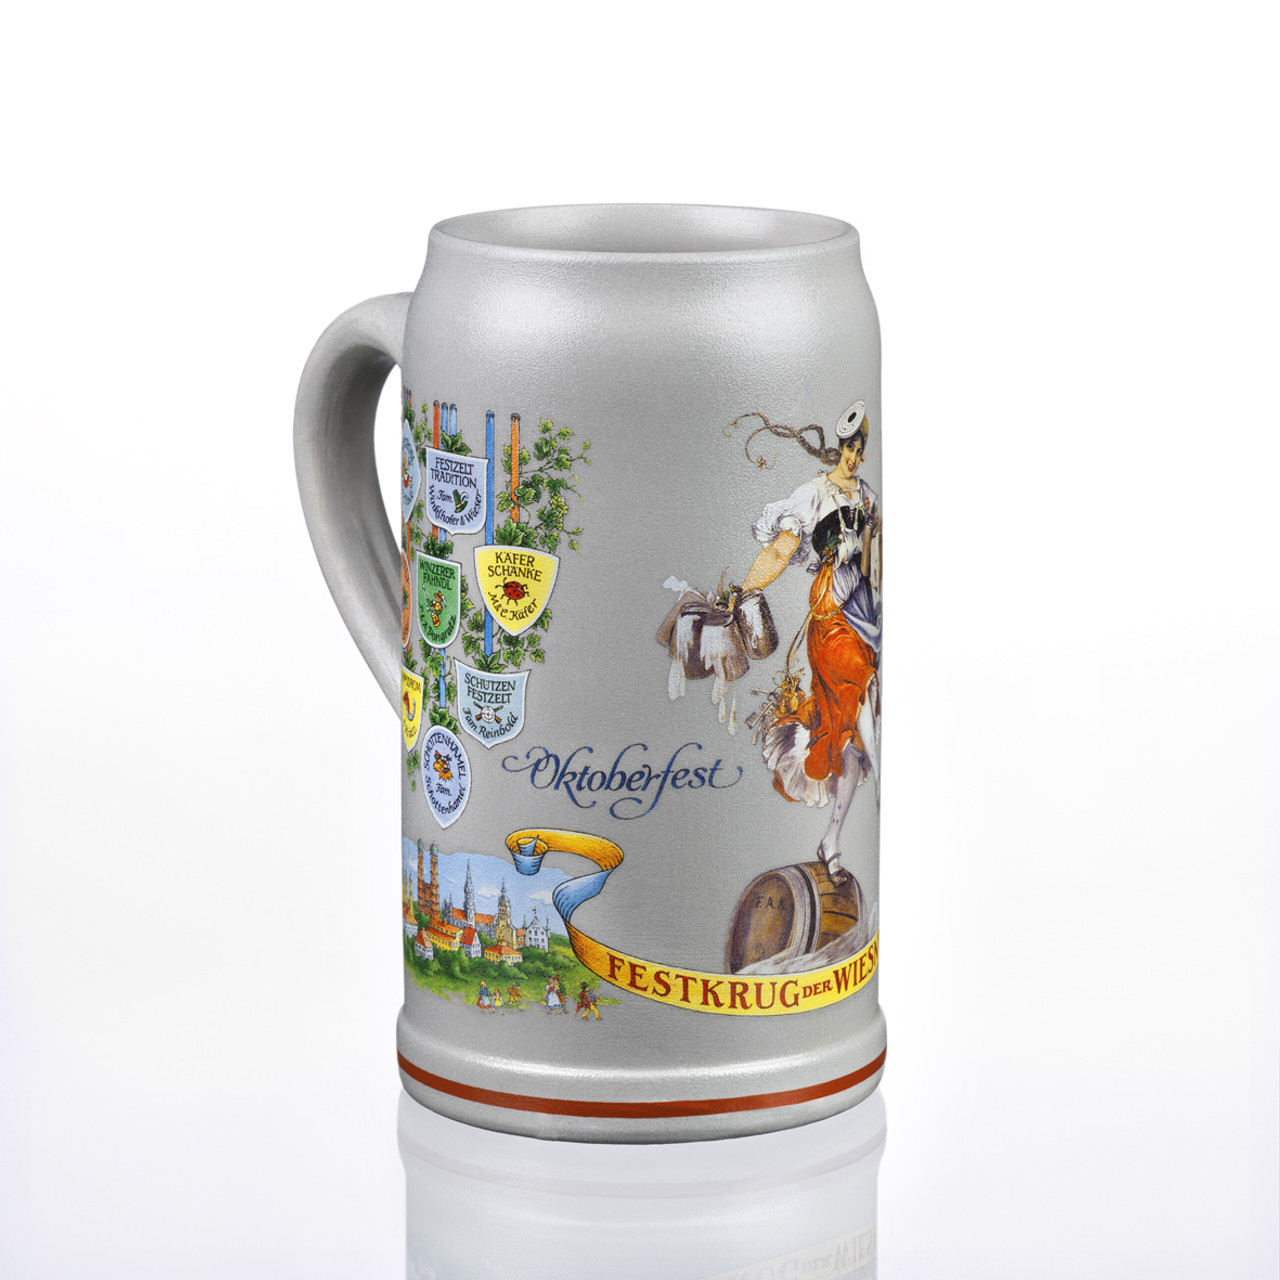 Three Quarter View of 1L Official Schutzenliesl Beer Mug from 2011 Munich Oktoberfest